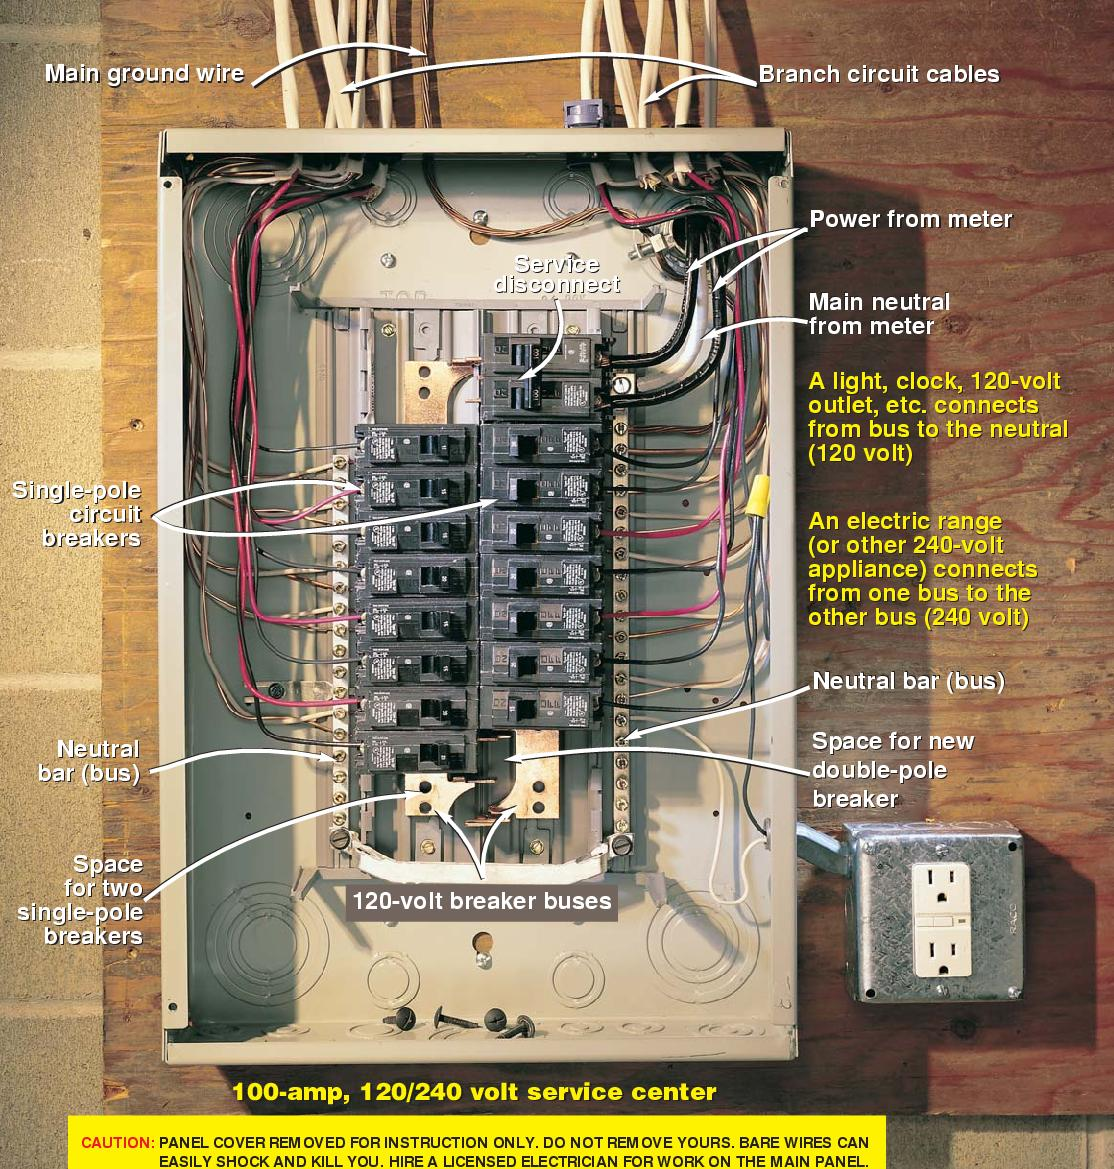 General Electric Breaker Box Diagram